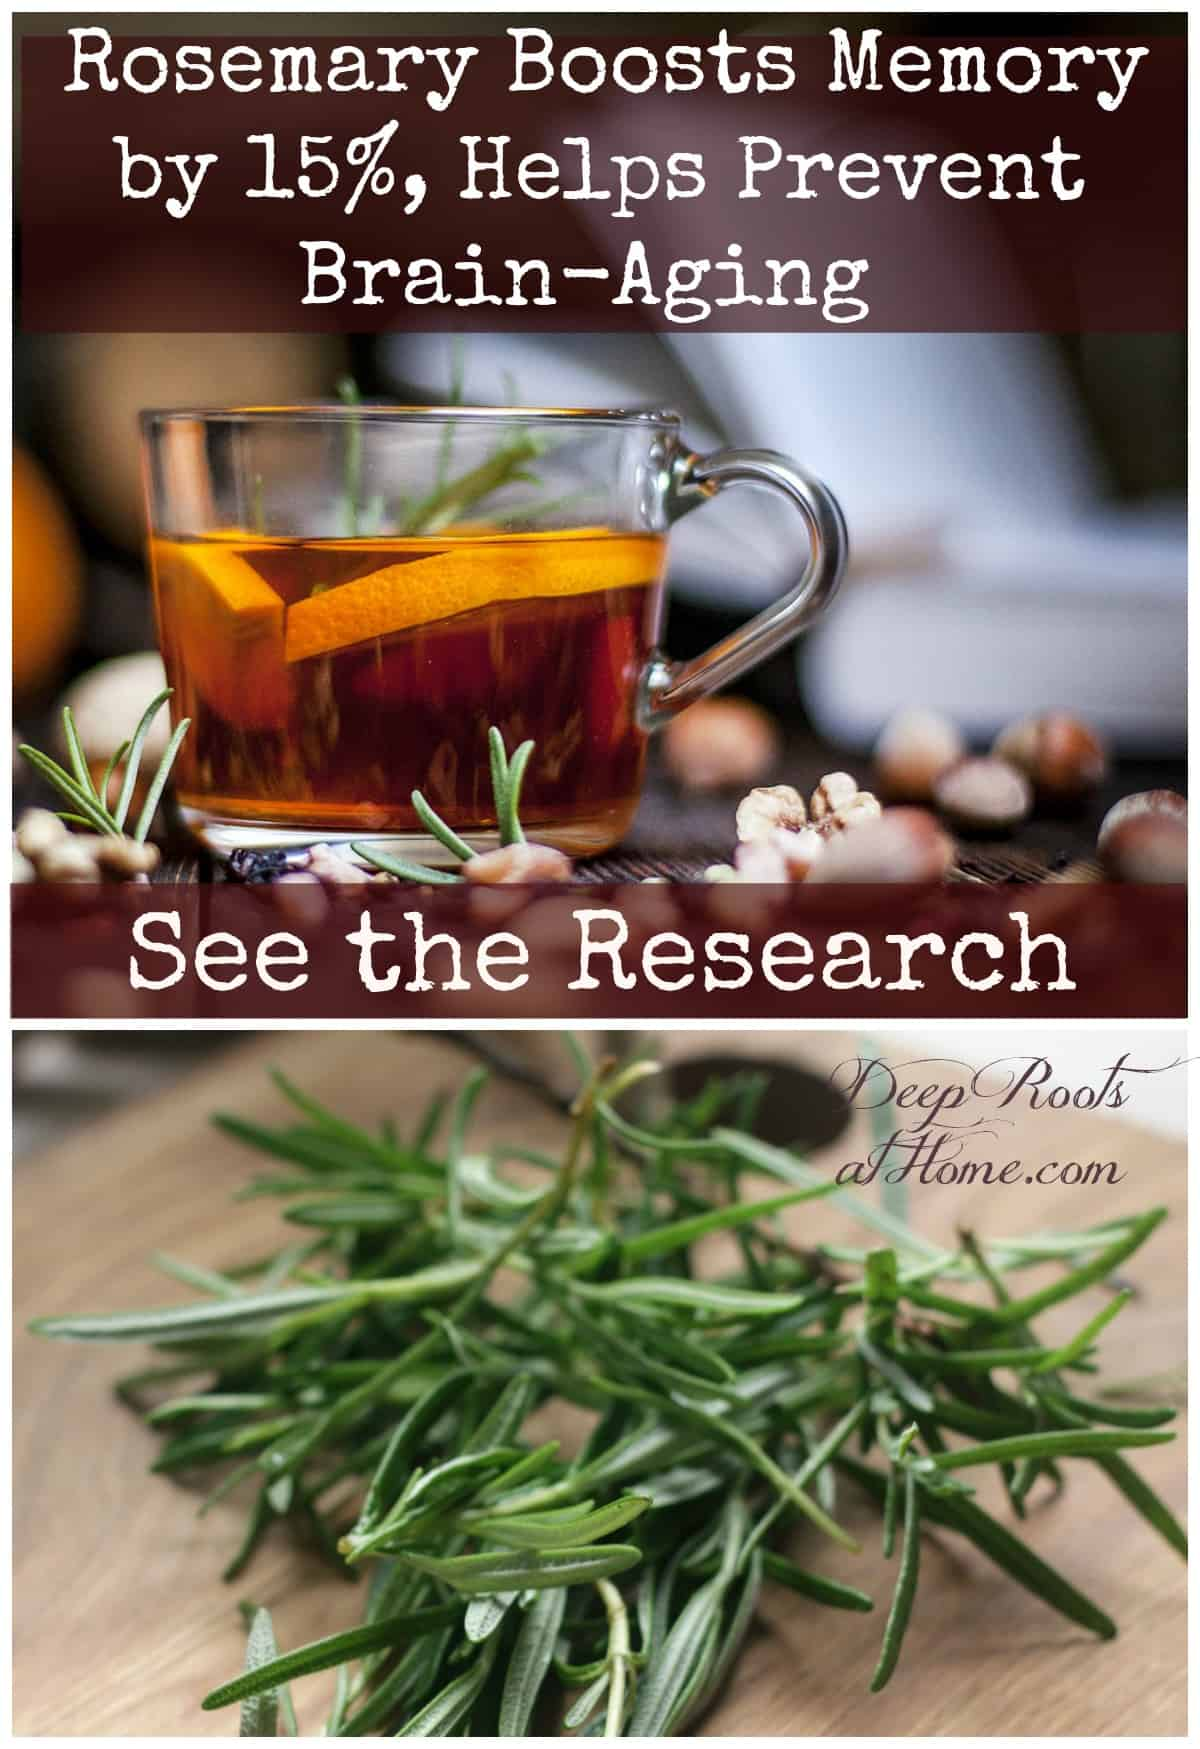 Rosemary Boosts Memory by 15%, Prevents Brain-Aging Says the Science. Rosemary tea and rosemary herb in bloom and cut